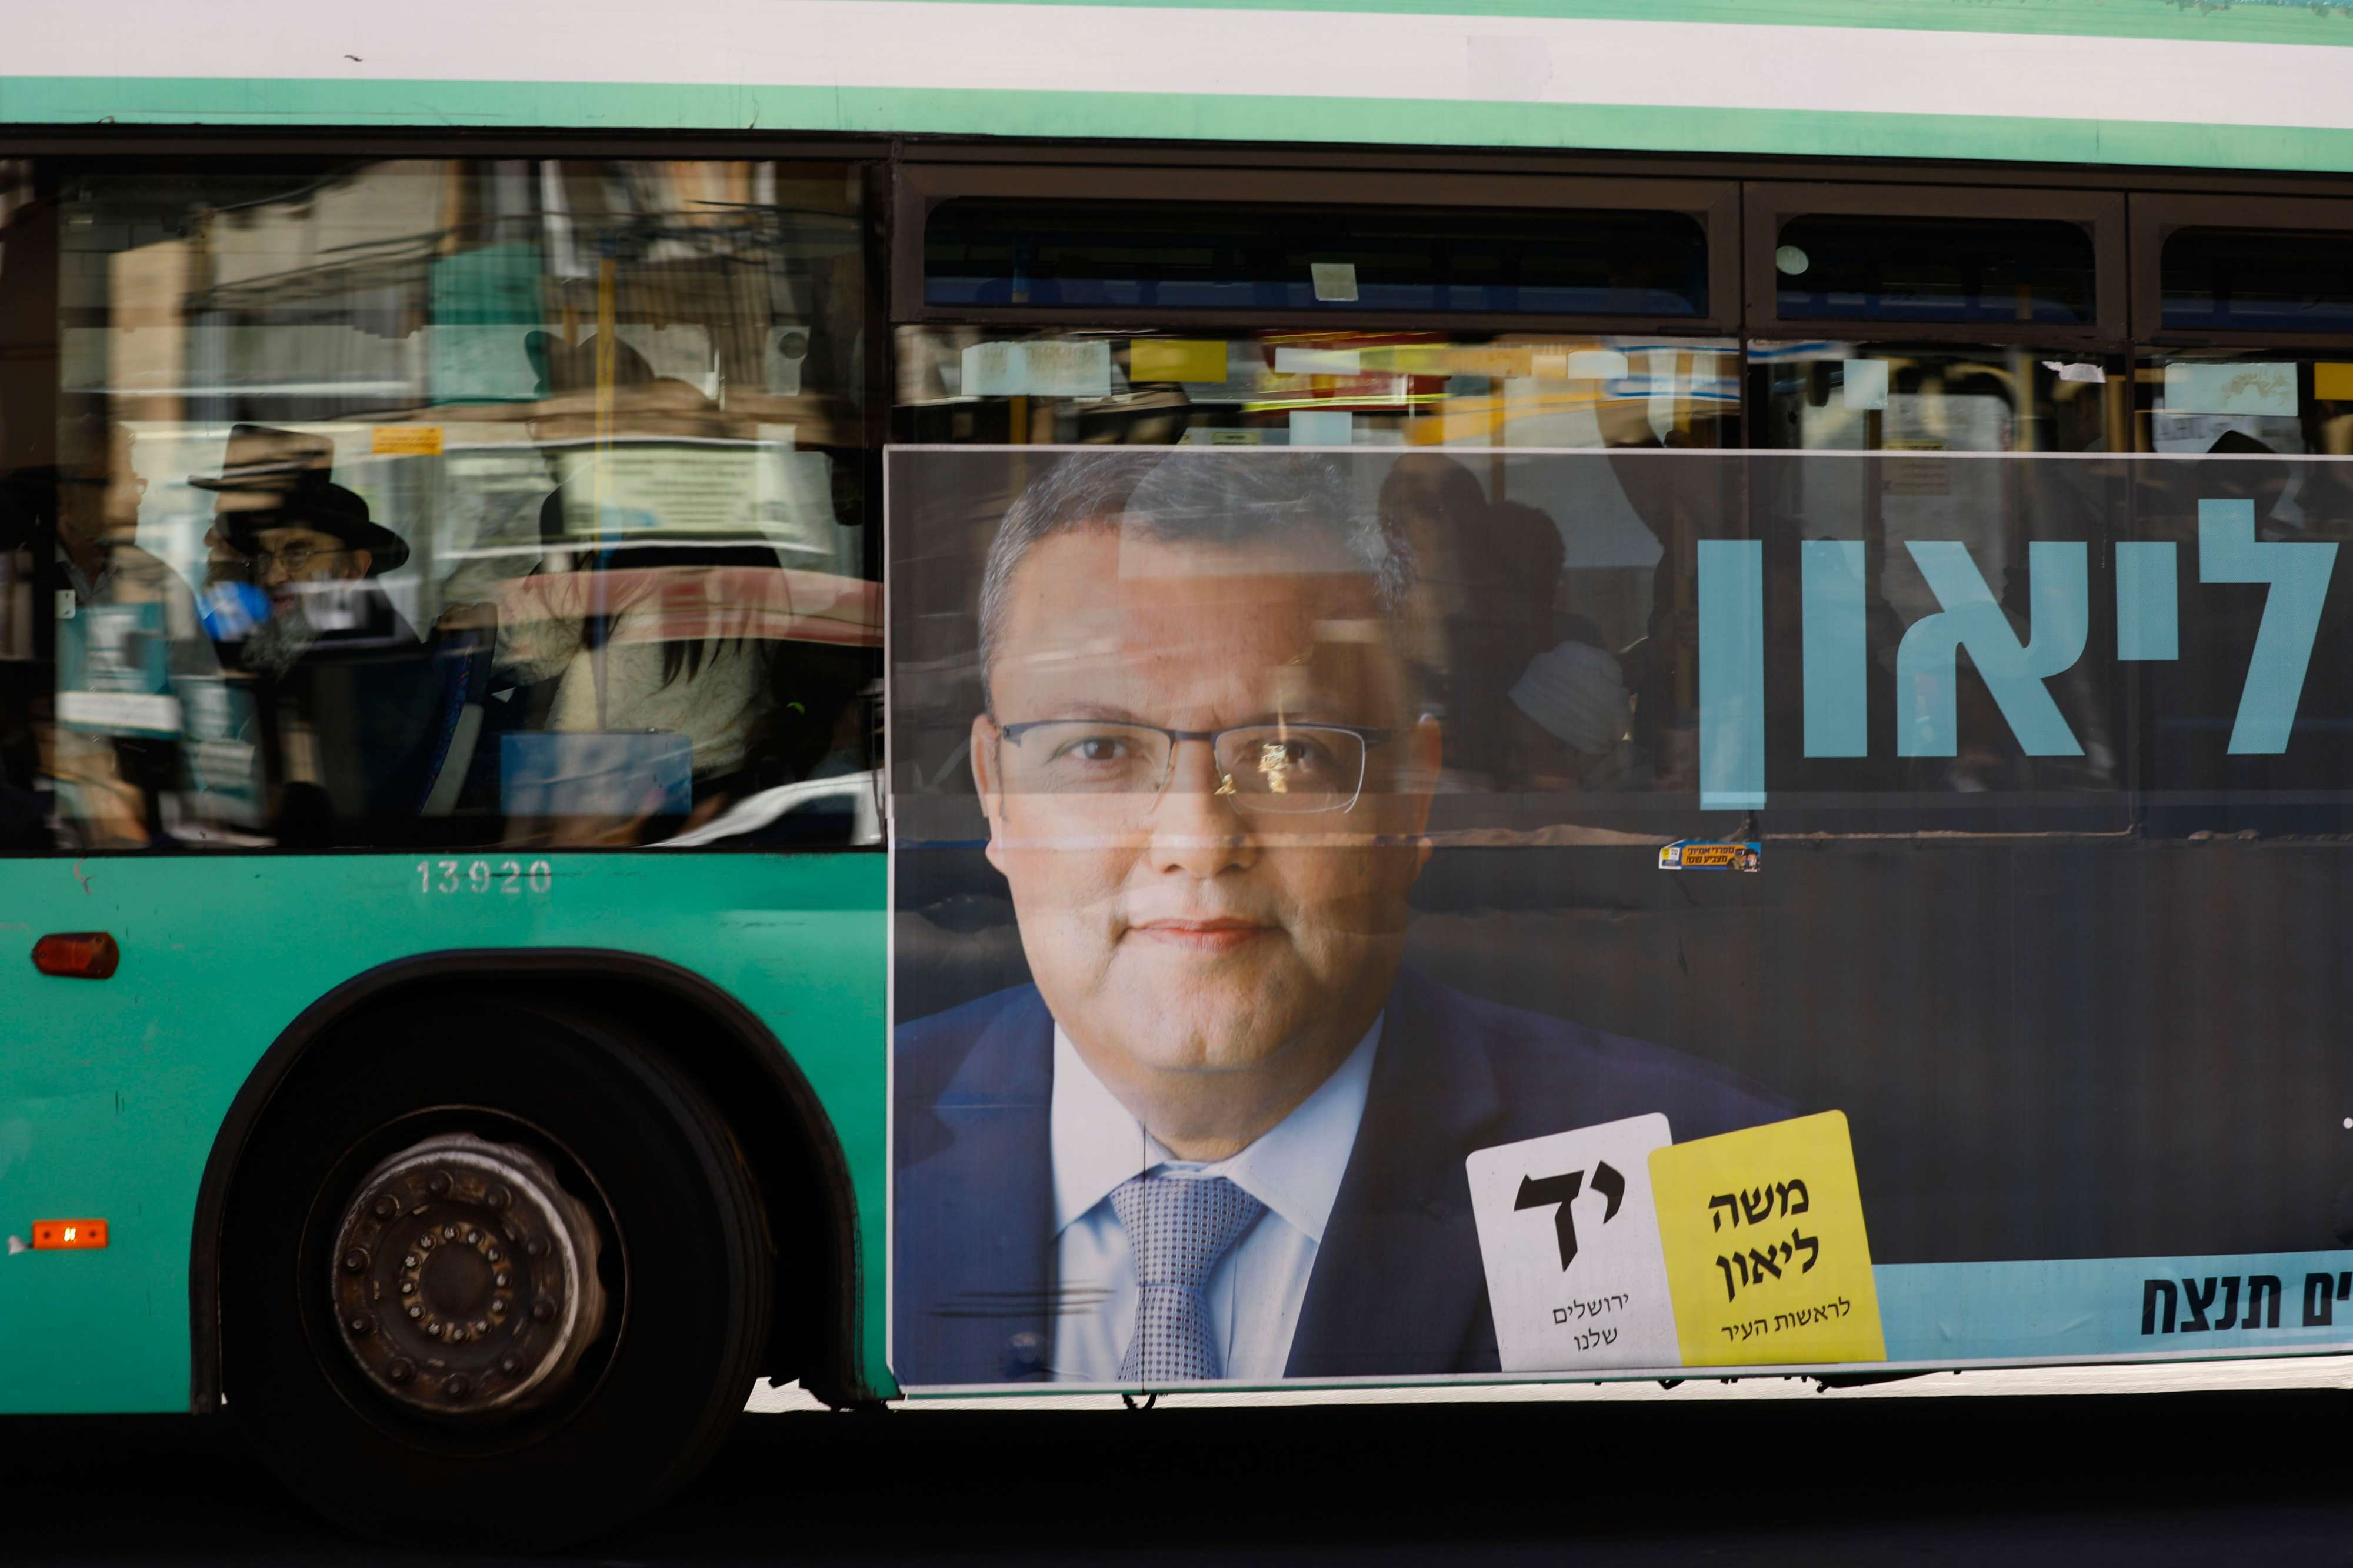 A campaign poster of municipal candidate Moshe Lion on a bus ahead of the upcoming Jerusalem municipal elections, in Jerusalem.